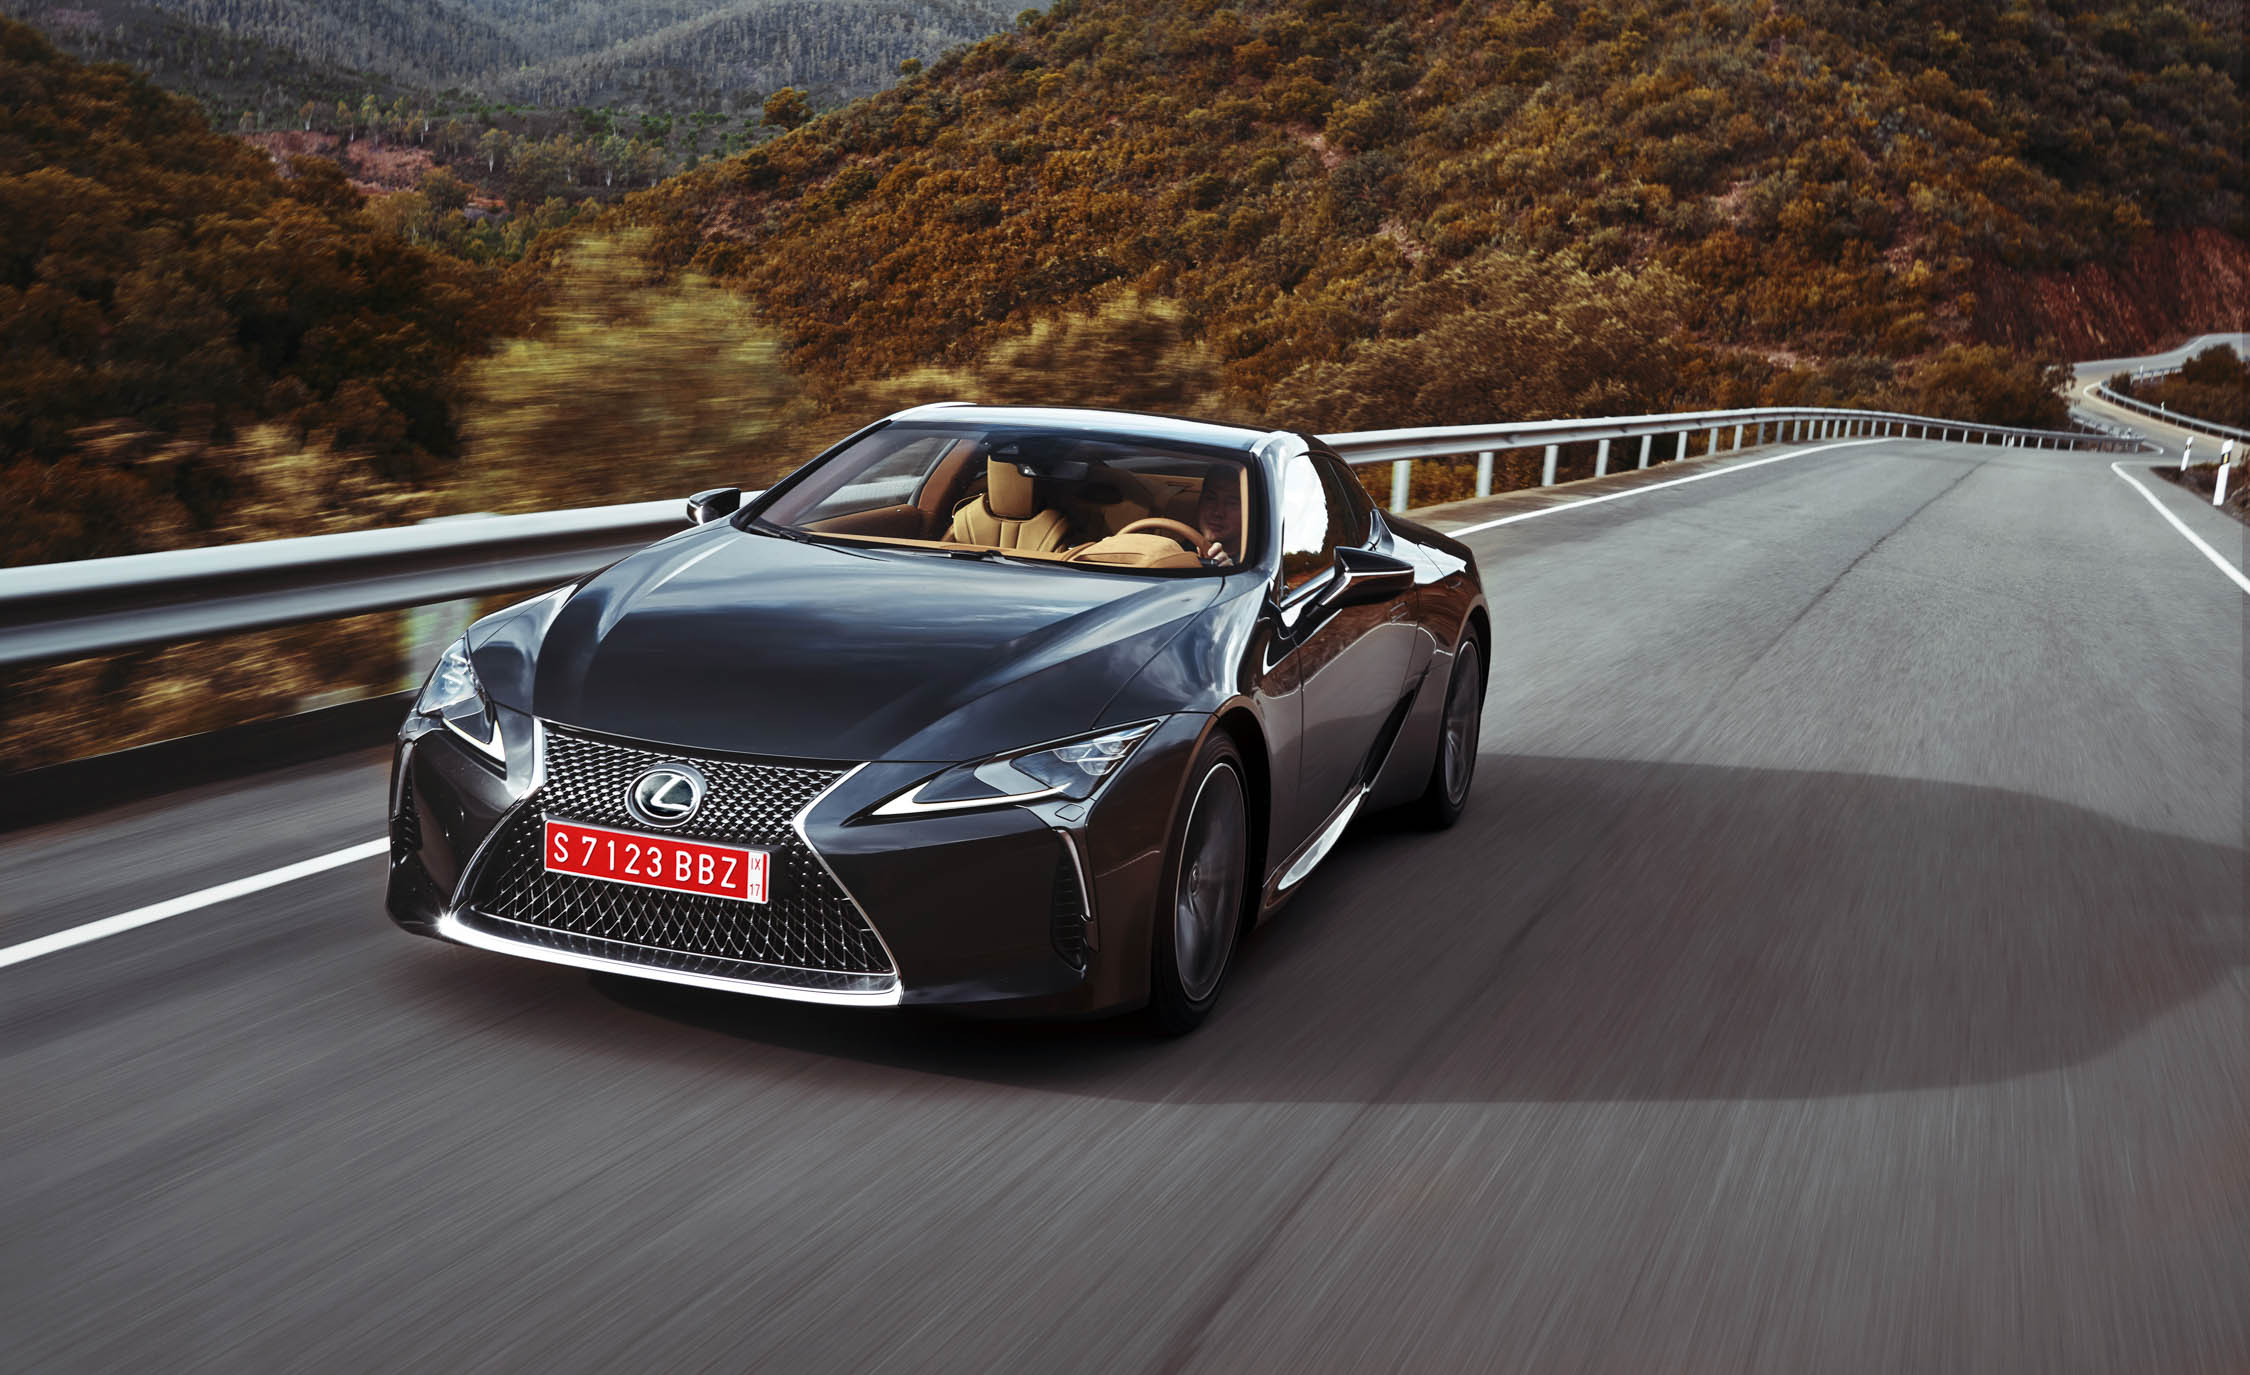 2018 Lexus Lc 500 Black Test Drive (View 59 of 84)